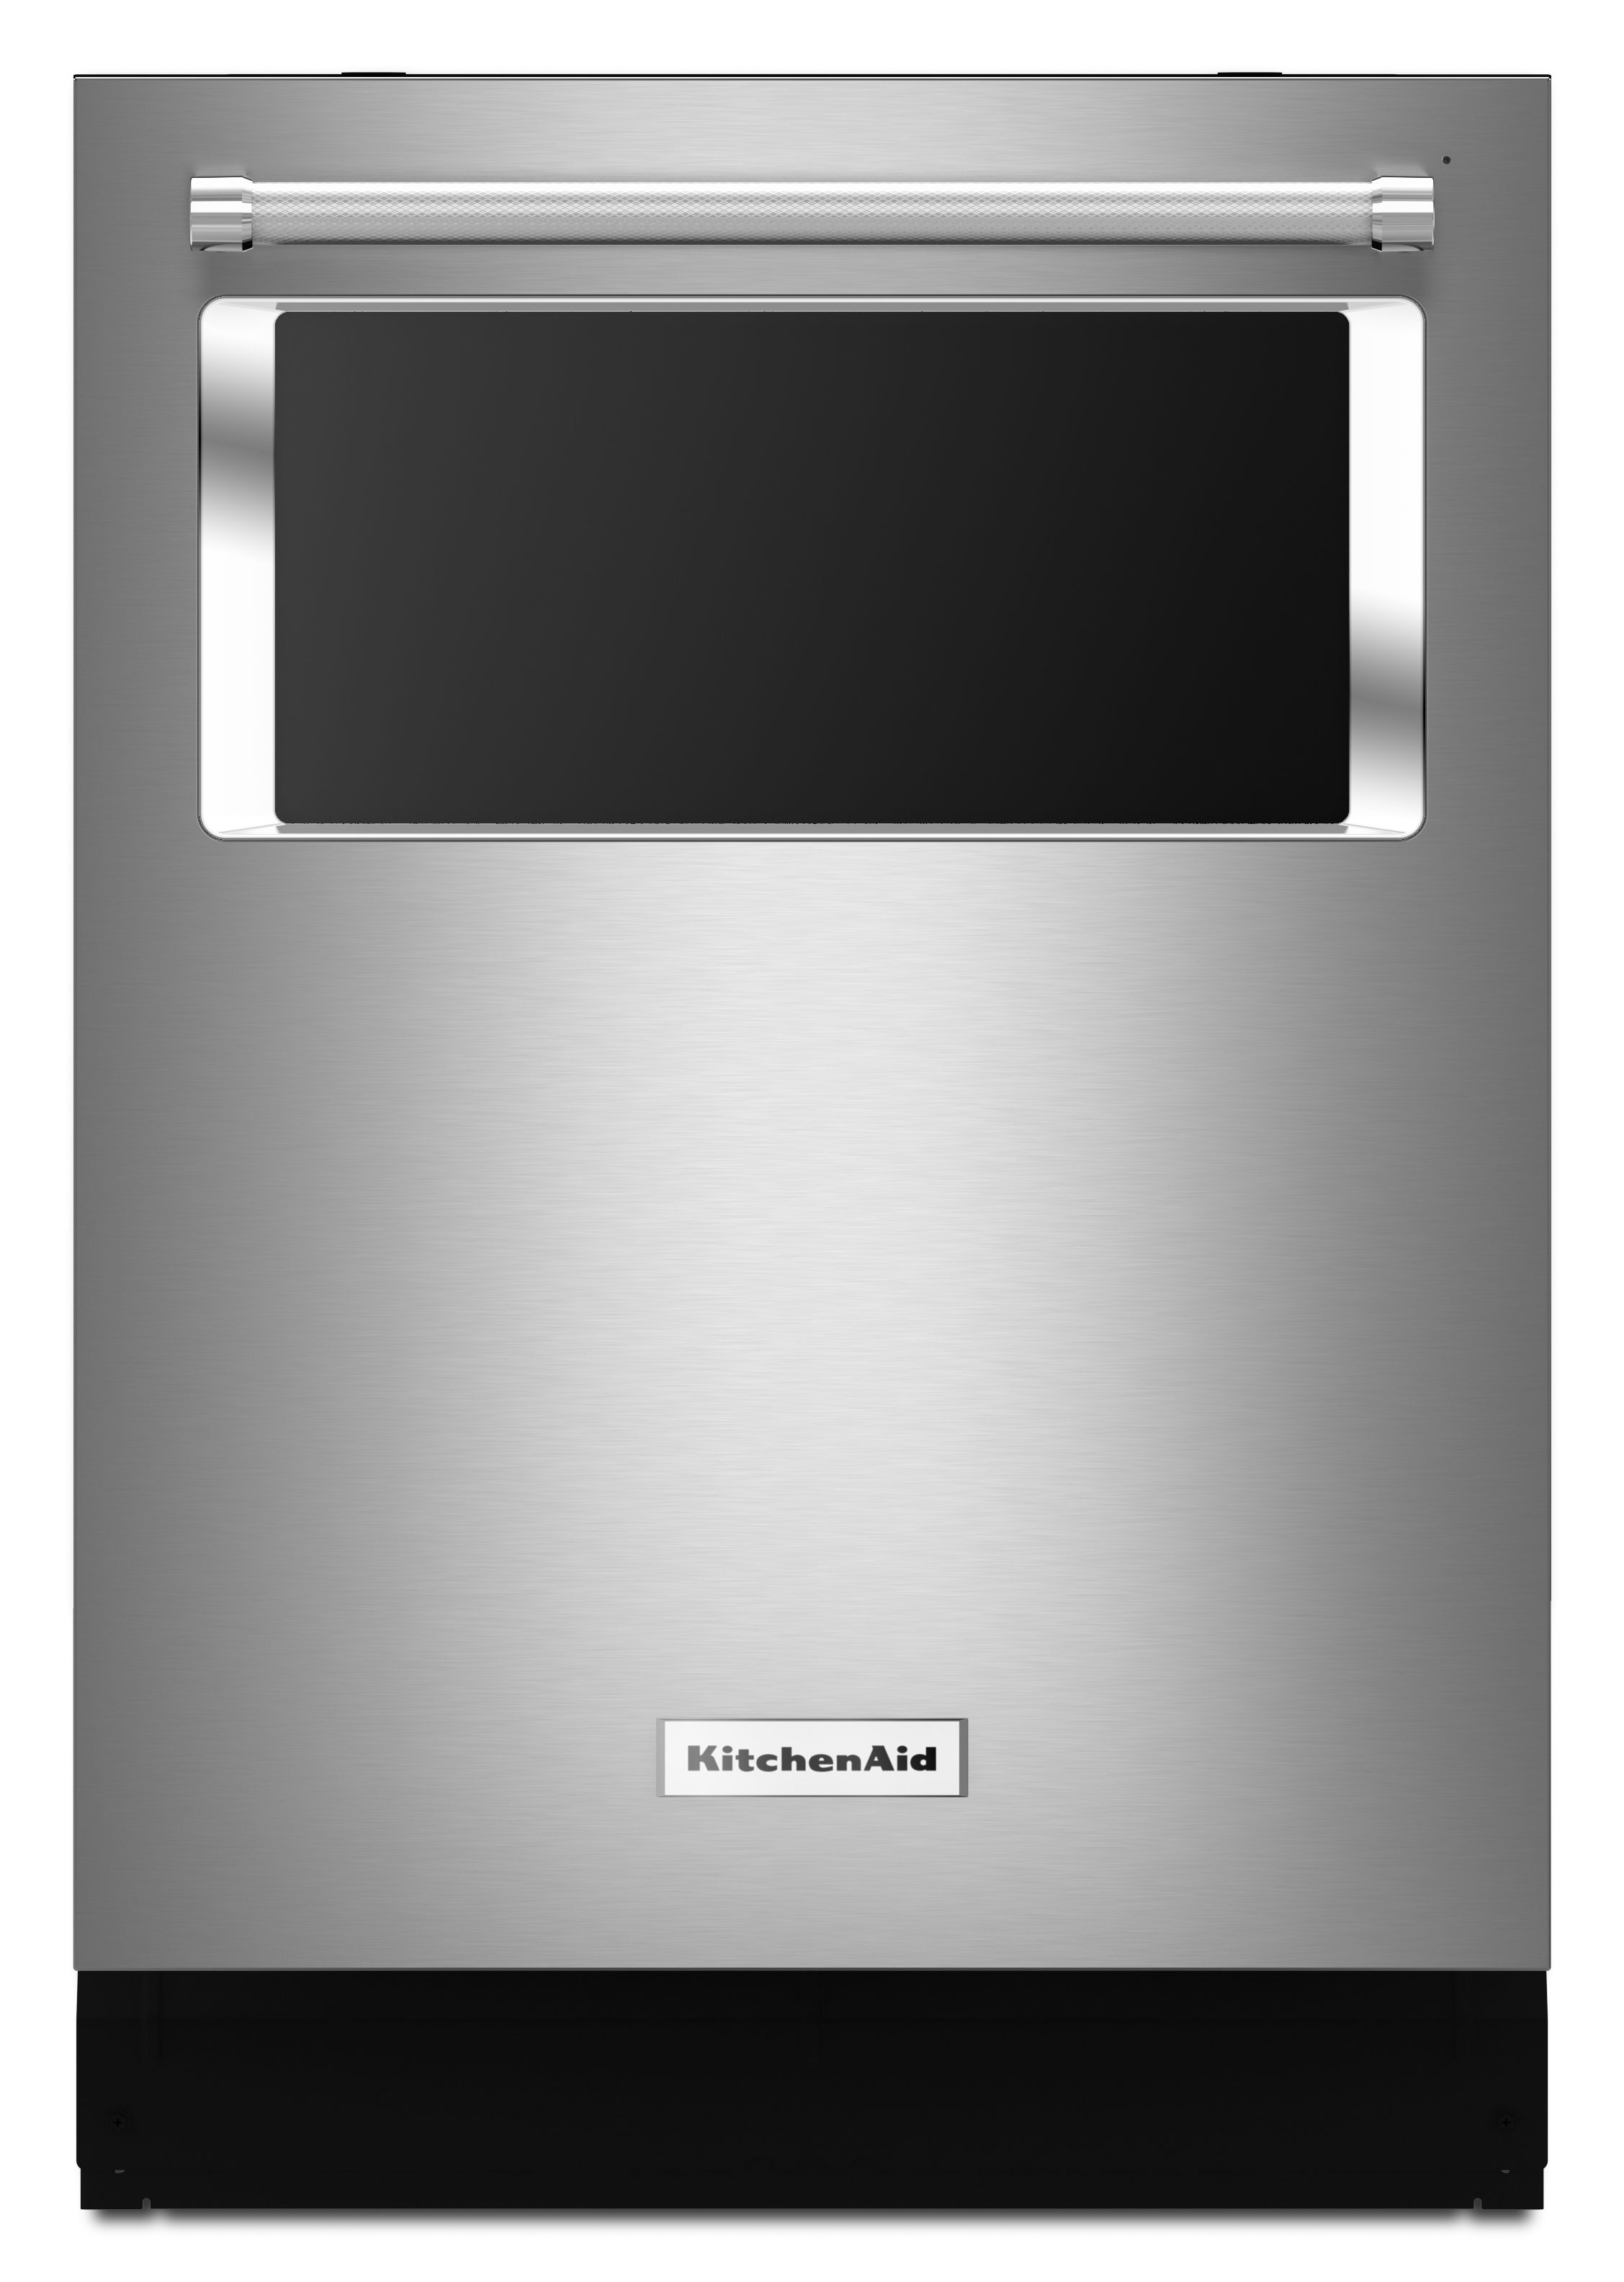 Kitchenaid 24 Built In Dishwasher Stainless Steel Kdtm384ess